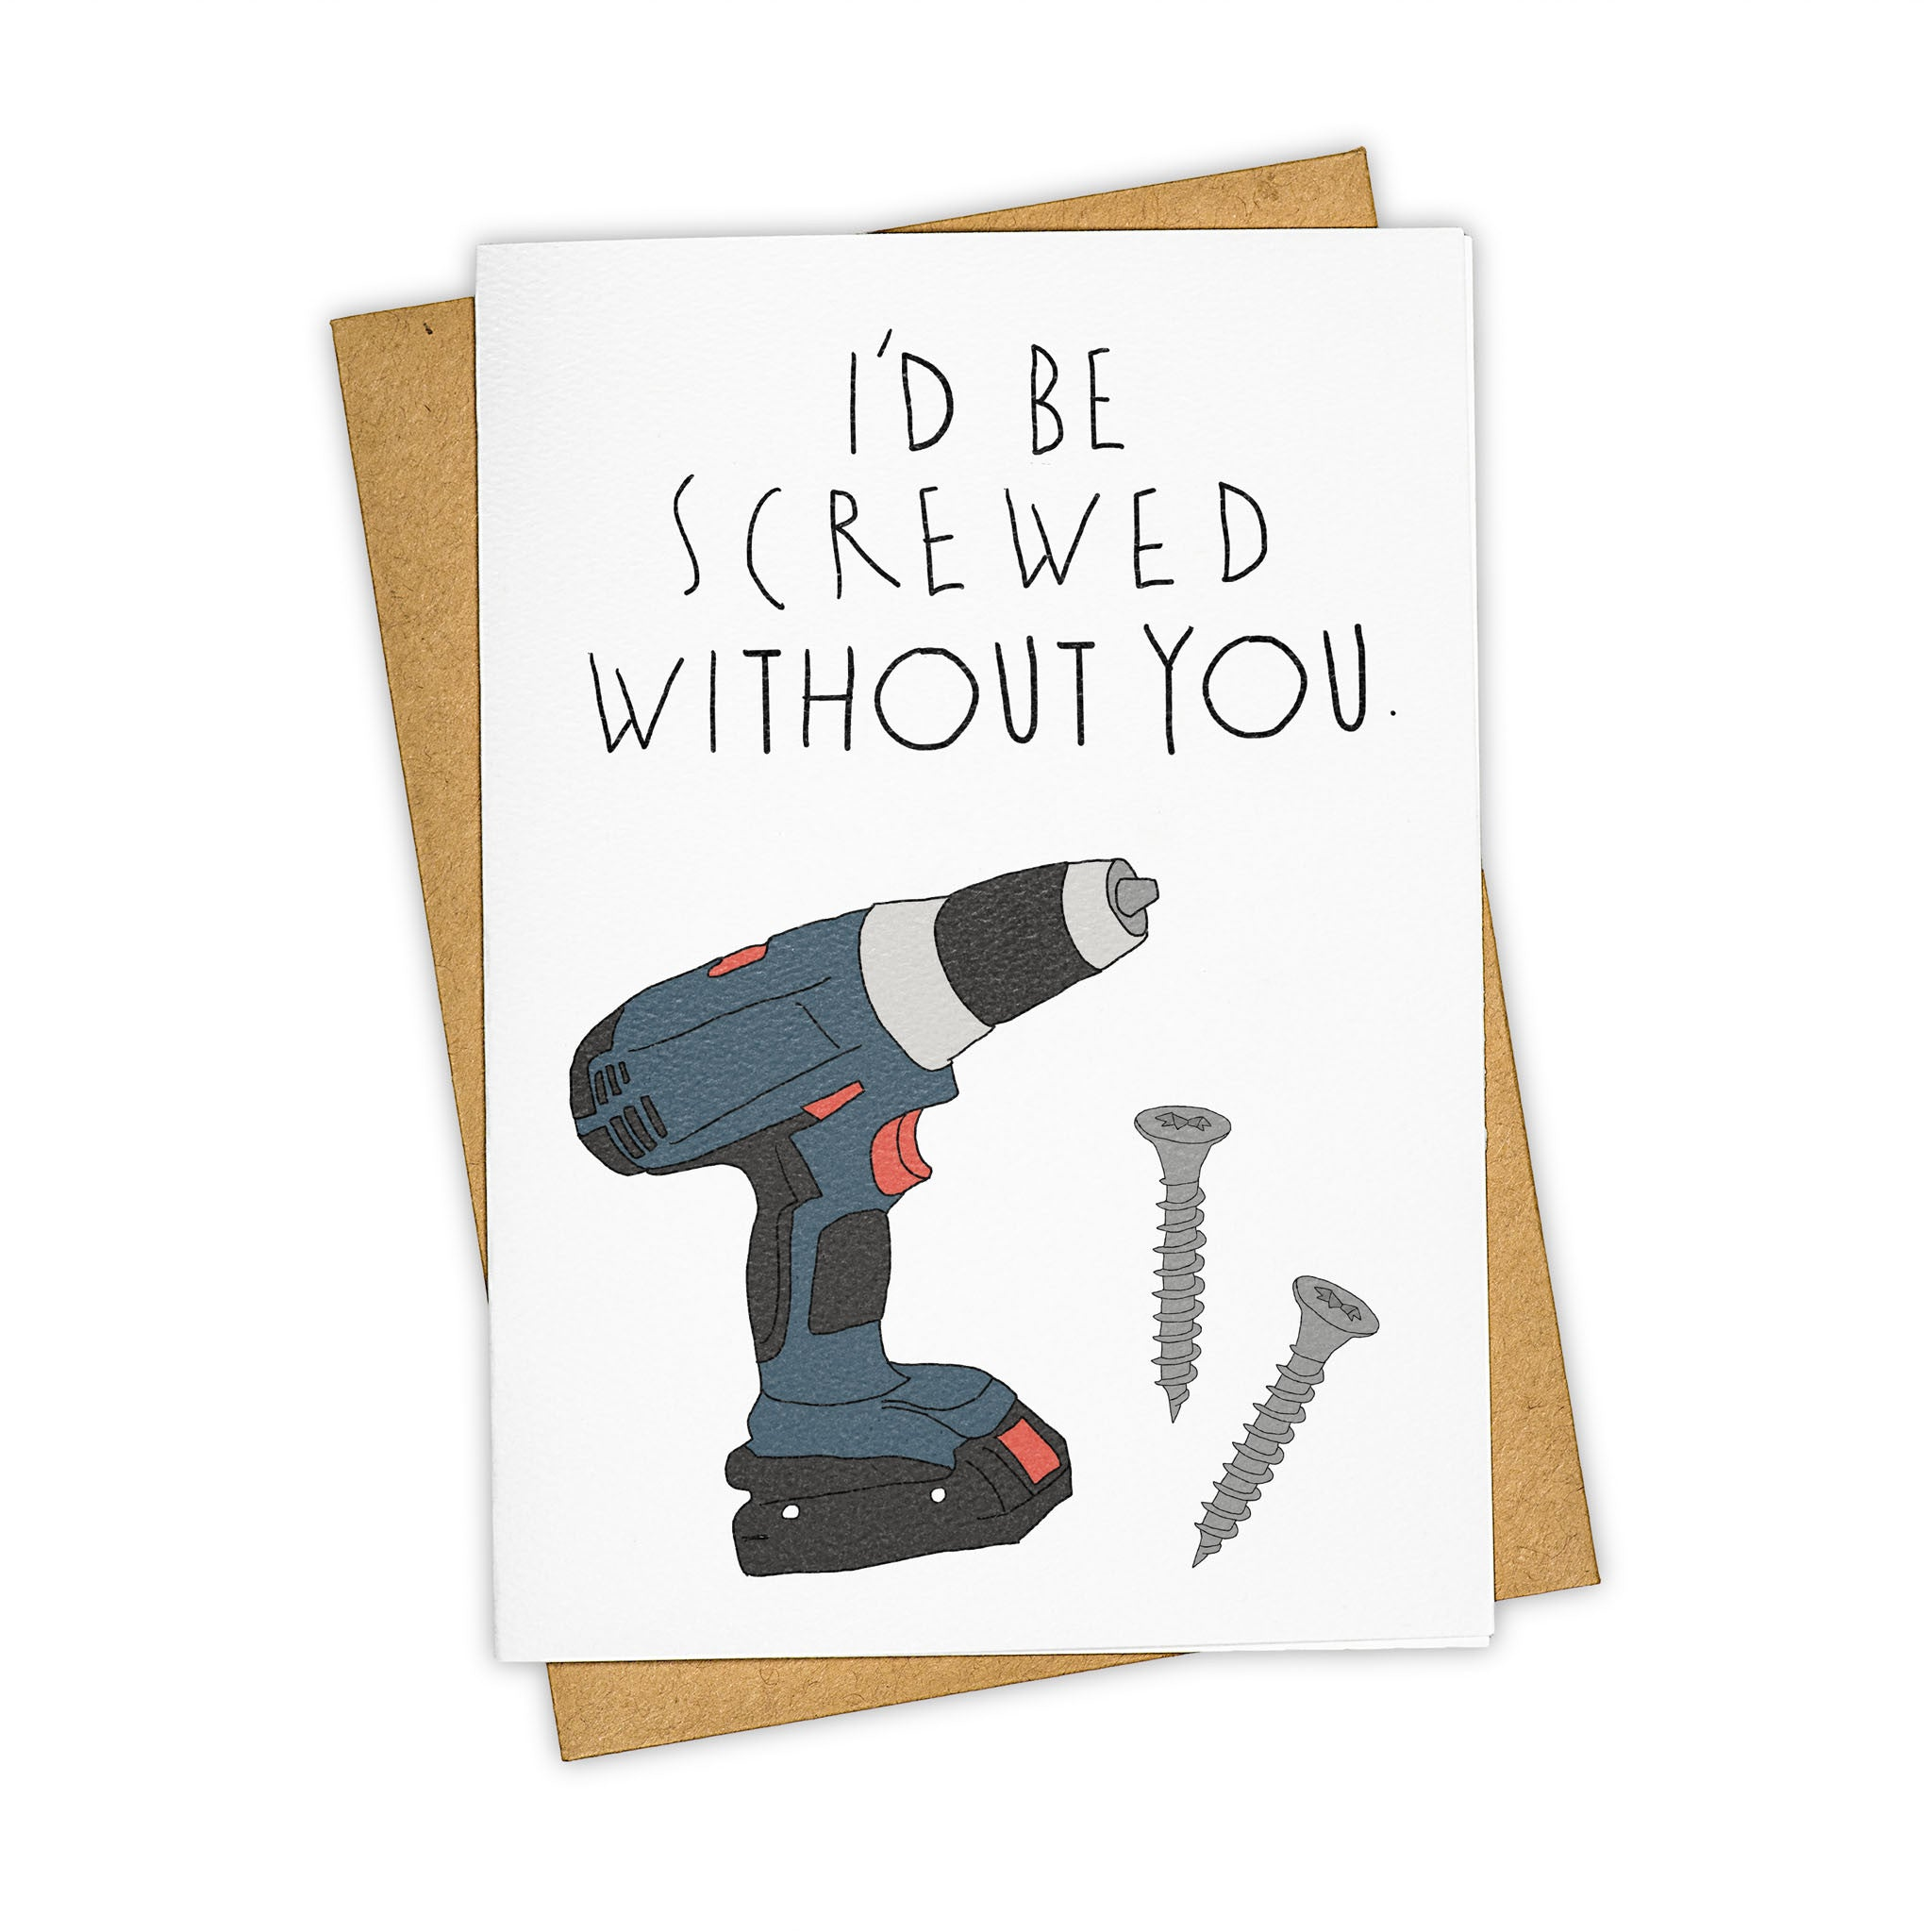 TAY HAM Screwdriver Screwed Without You Greeting Card